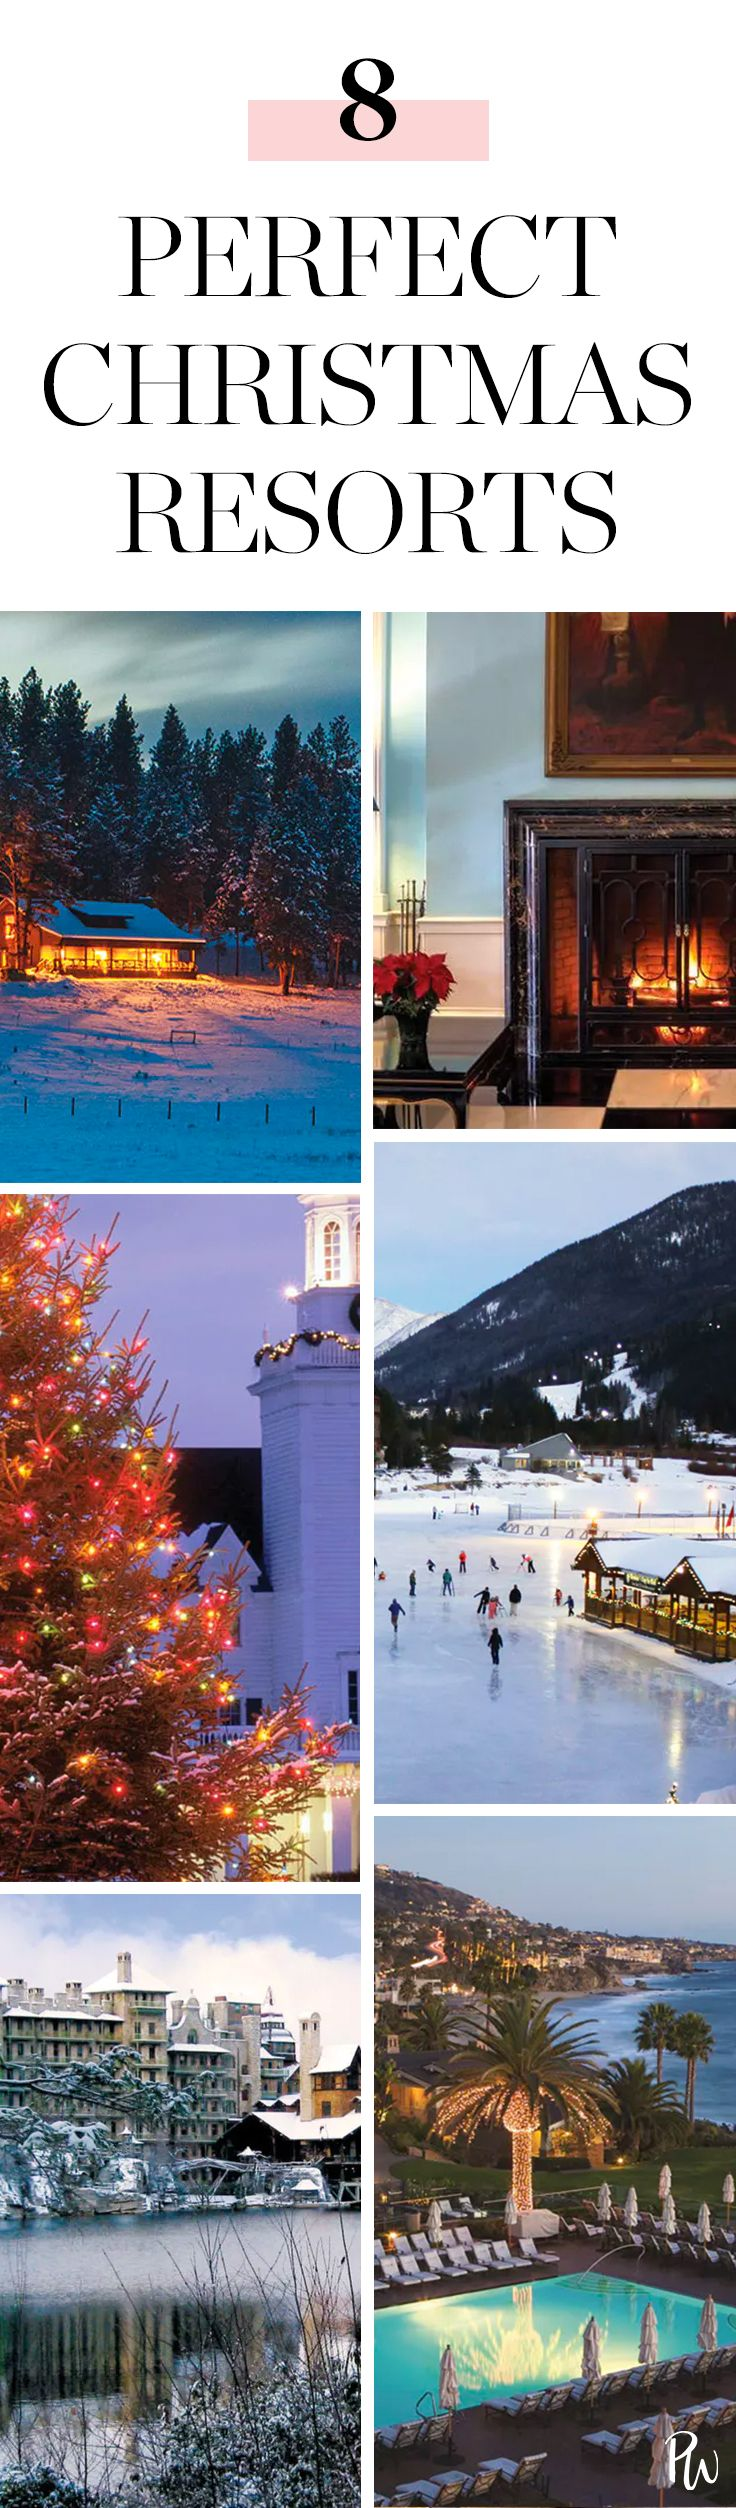 Why not get out of town to one of these sophisticated resorts that know how to do holiday cheer? Discover these 8 amazing Christmas resorts here. #christmasresorts #christmastravel #holidaytravel #christmasvacation